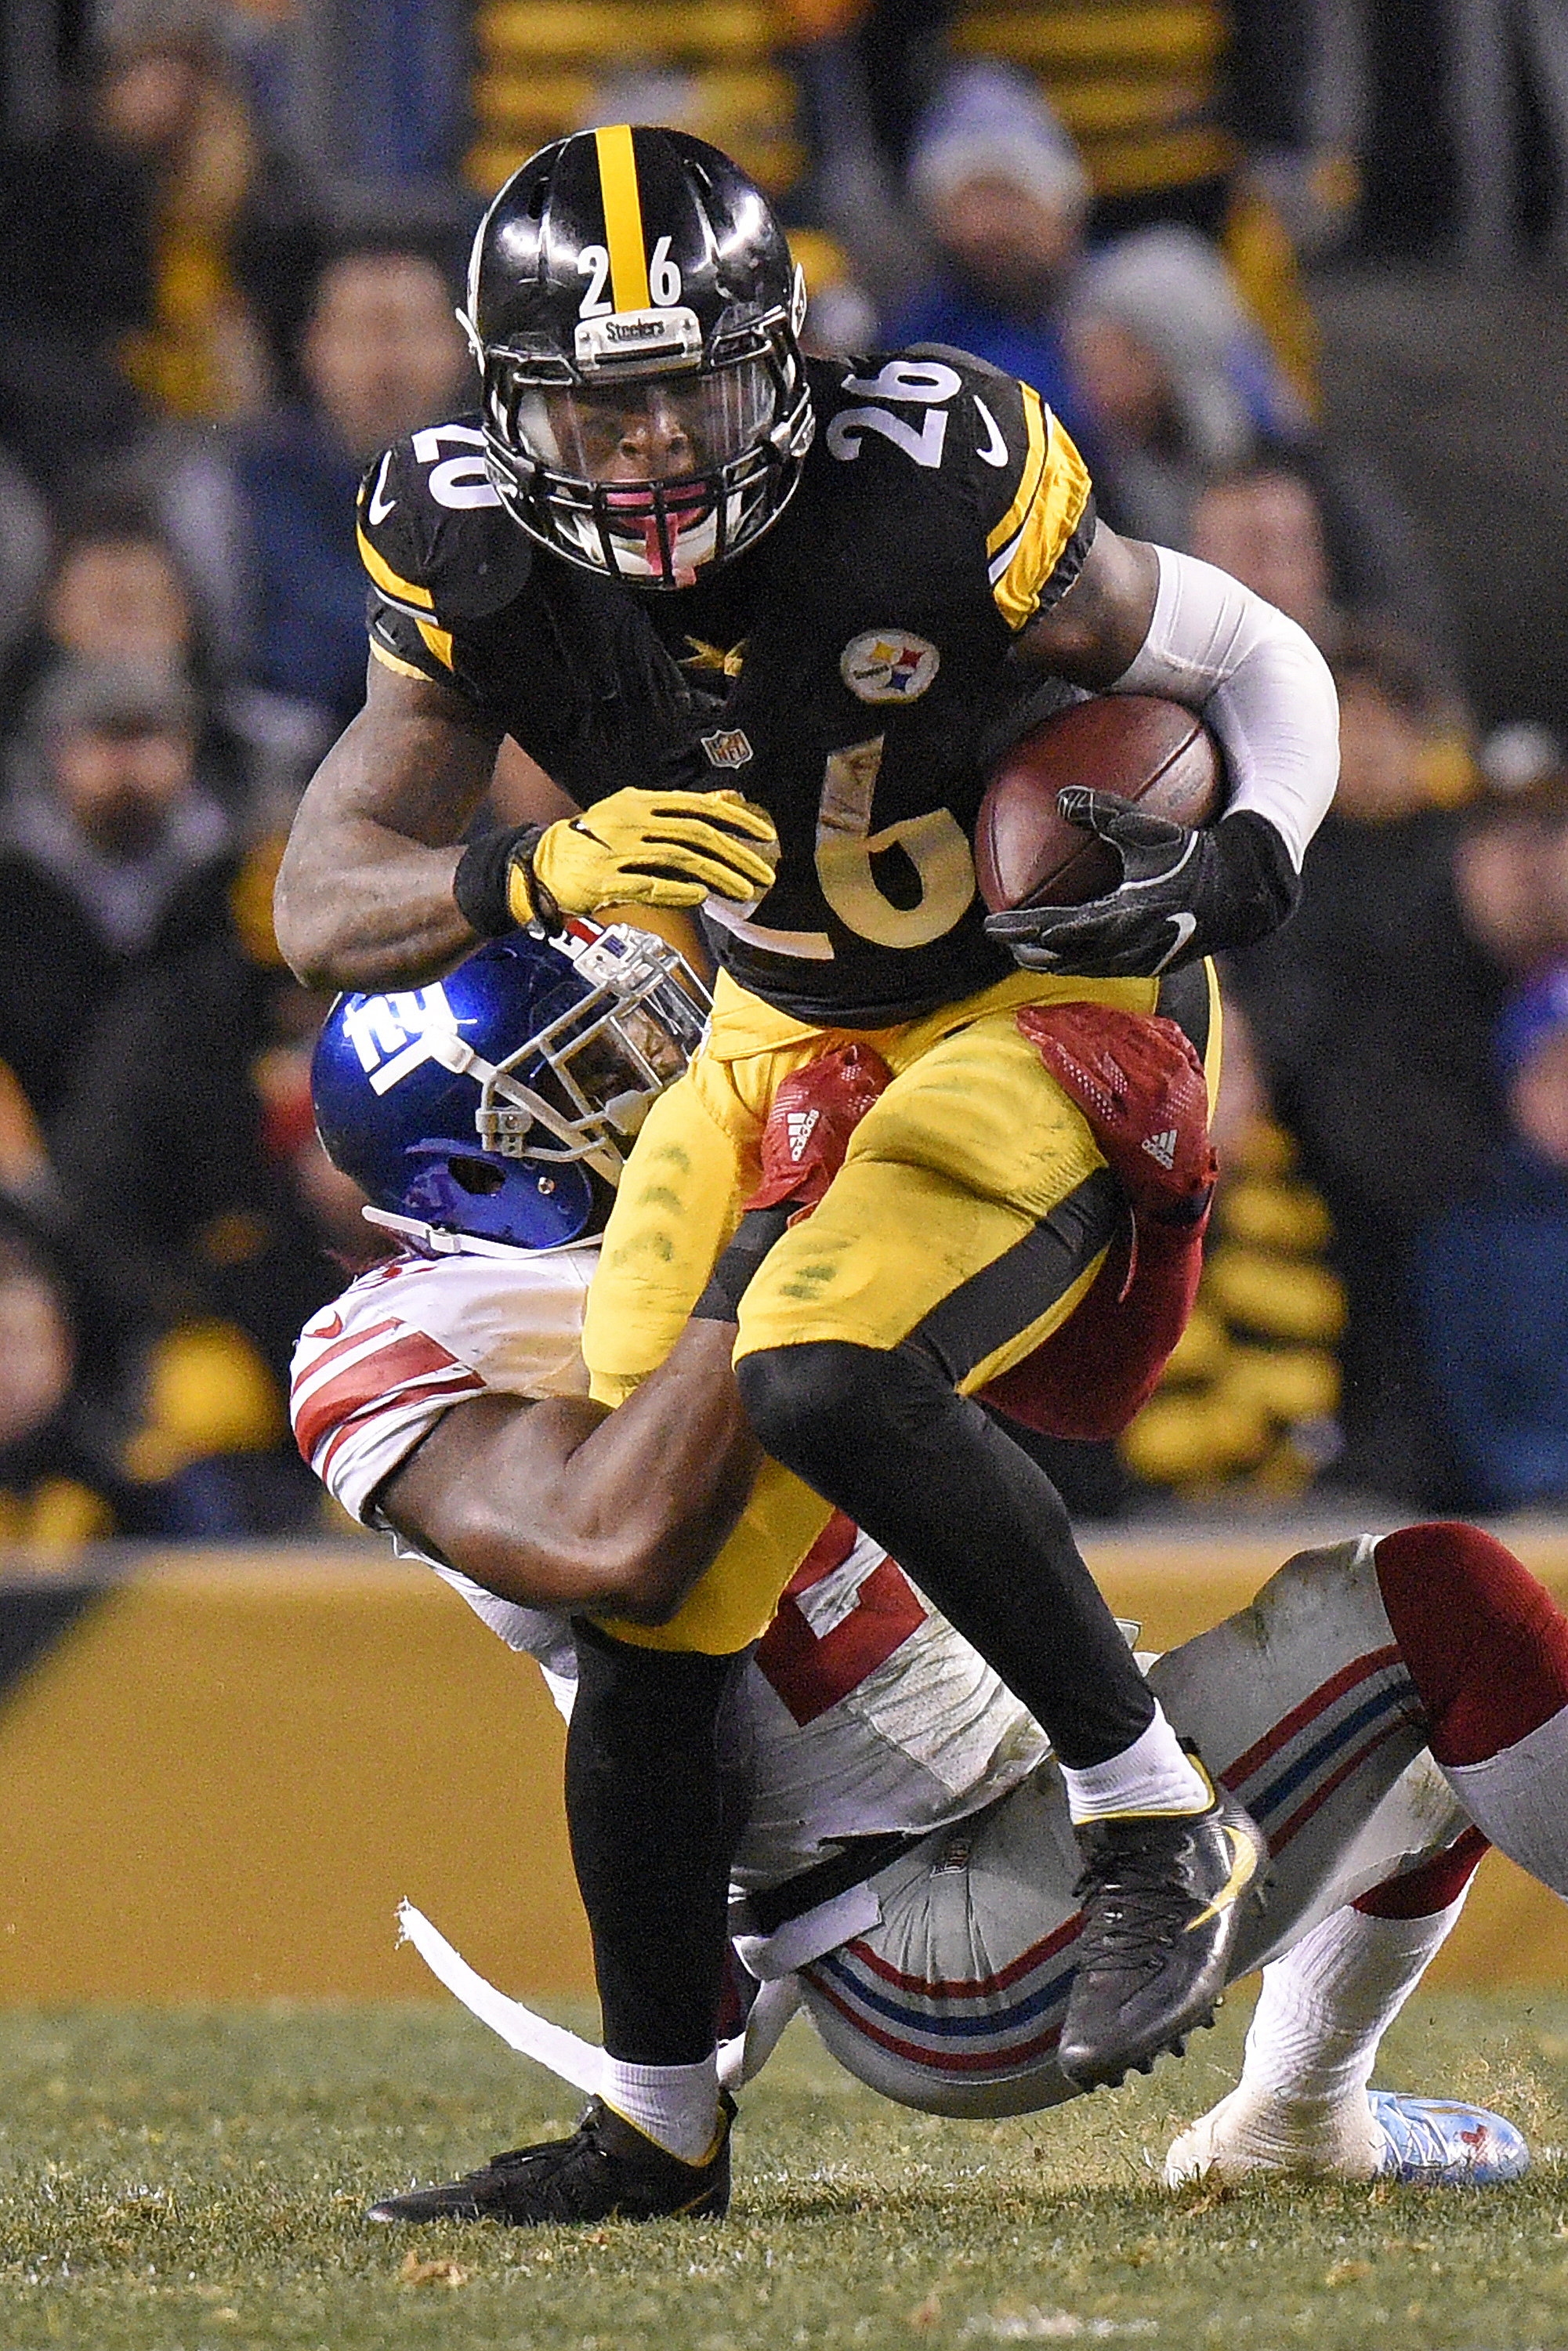 Pittsburgh Steelers running back Le'Veon Bell (26) is tackled by New York Giants strong safety Landon Collins (21) during the first half of an NFL football game in Pittsburgh, Sunday, Dec. 4, 2016. (AP Photo/Don Wright)